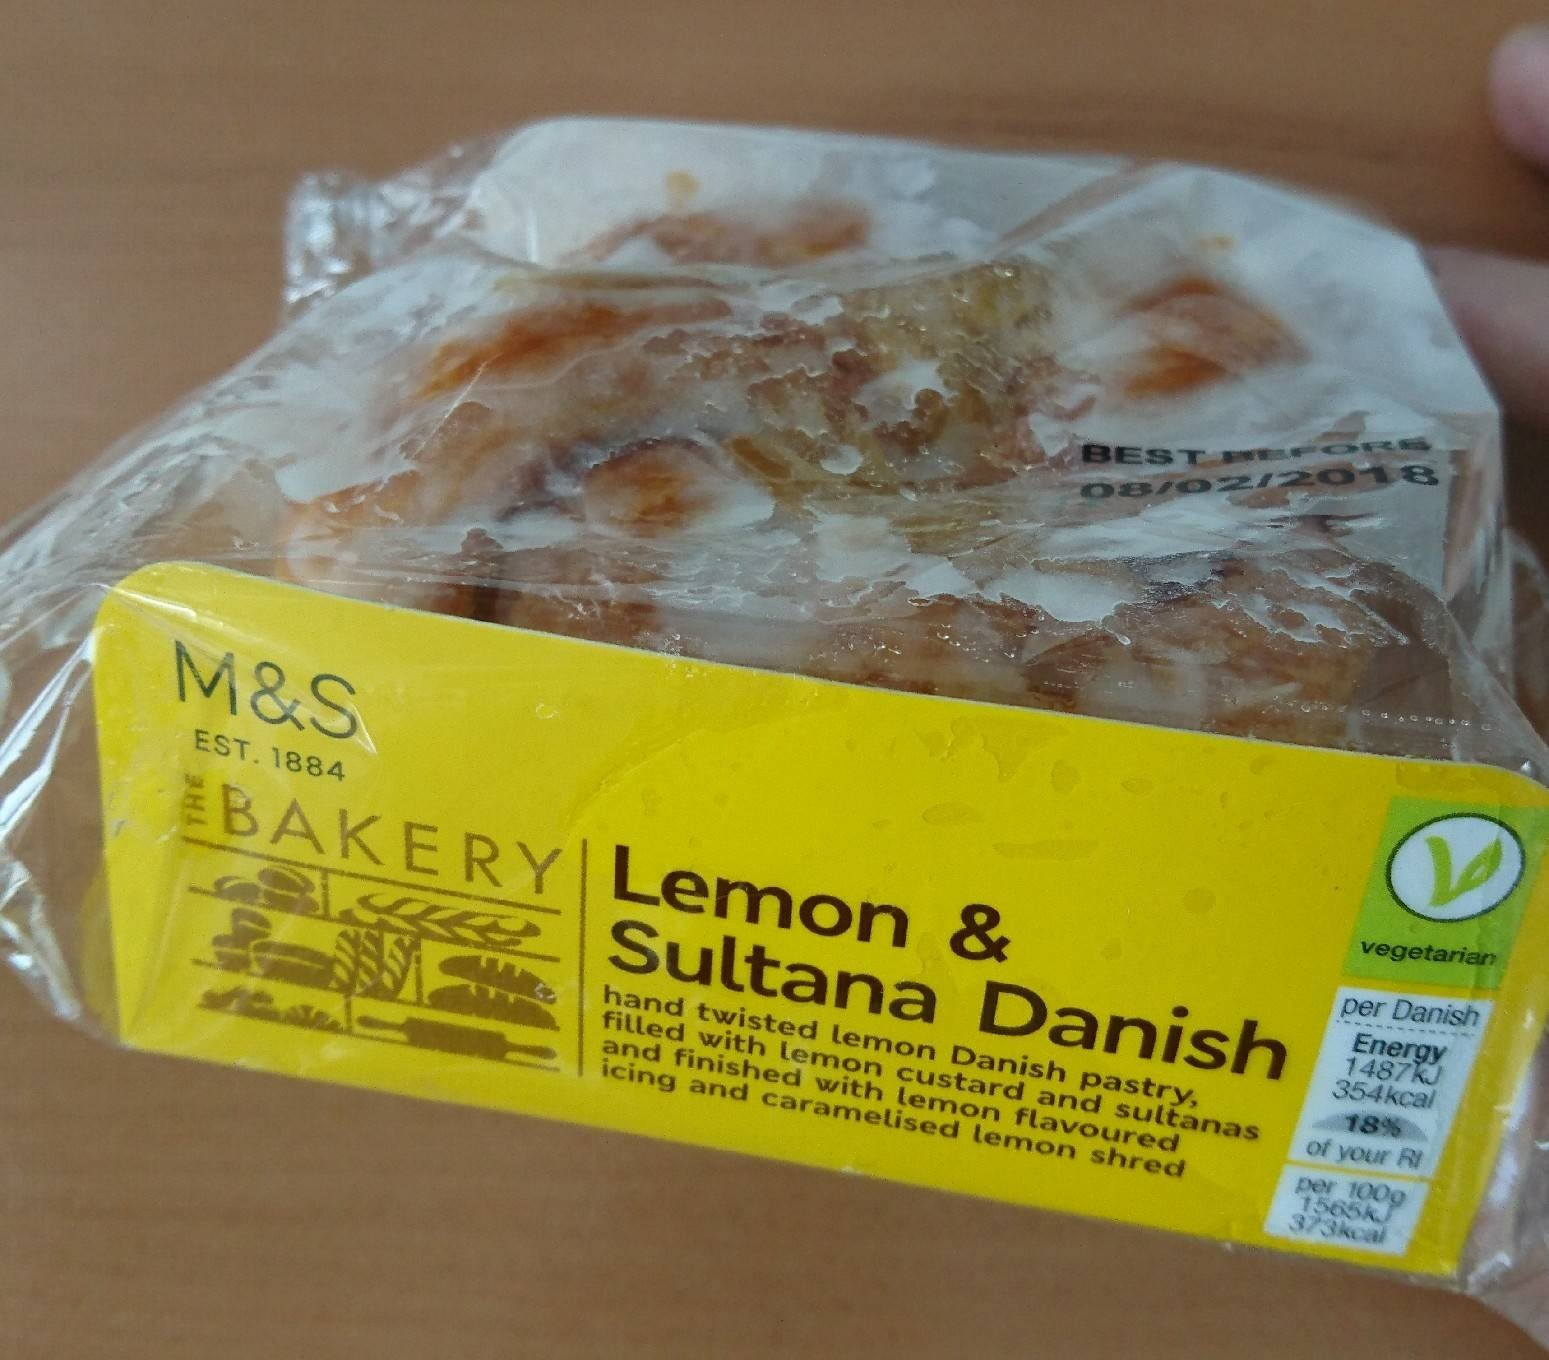 Lemon & Sultana Danish - Product